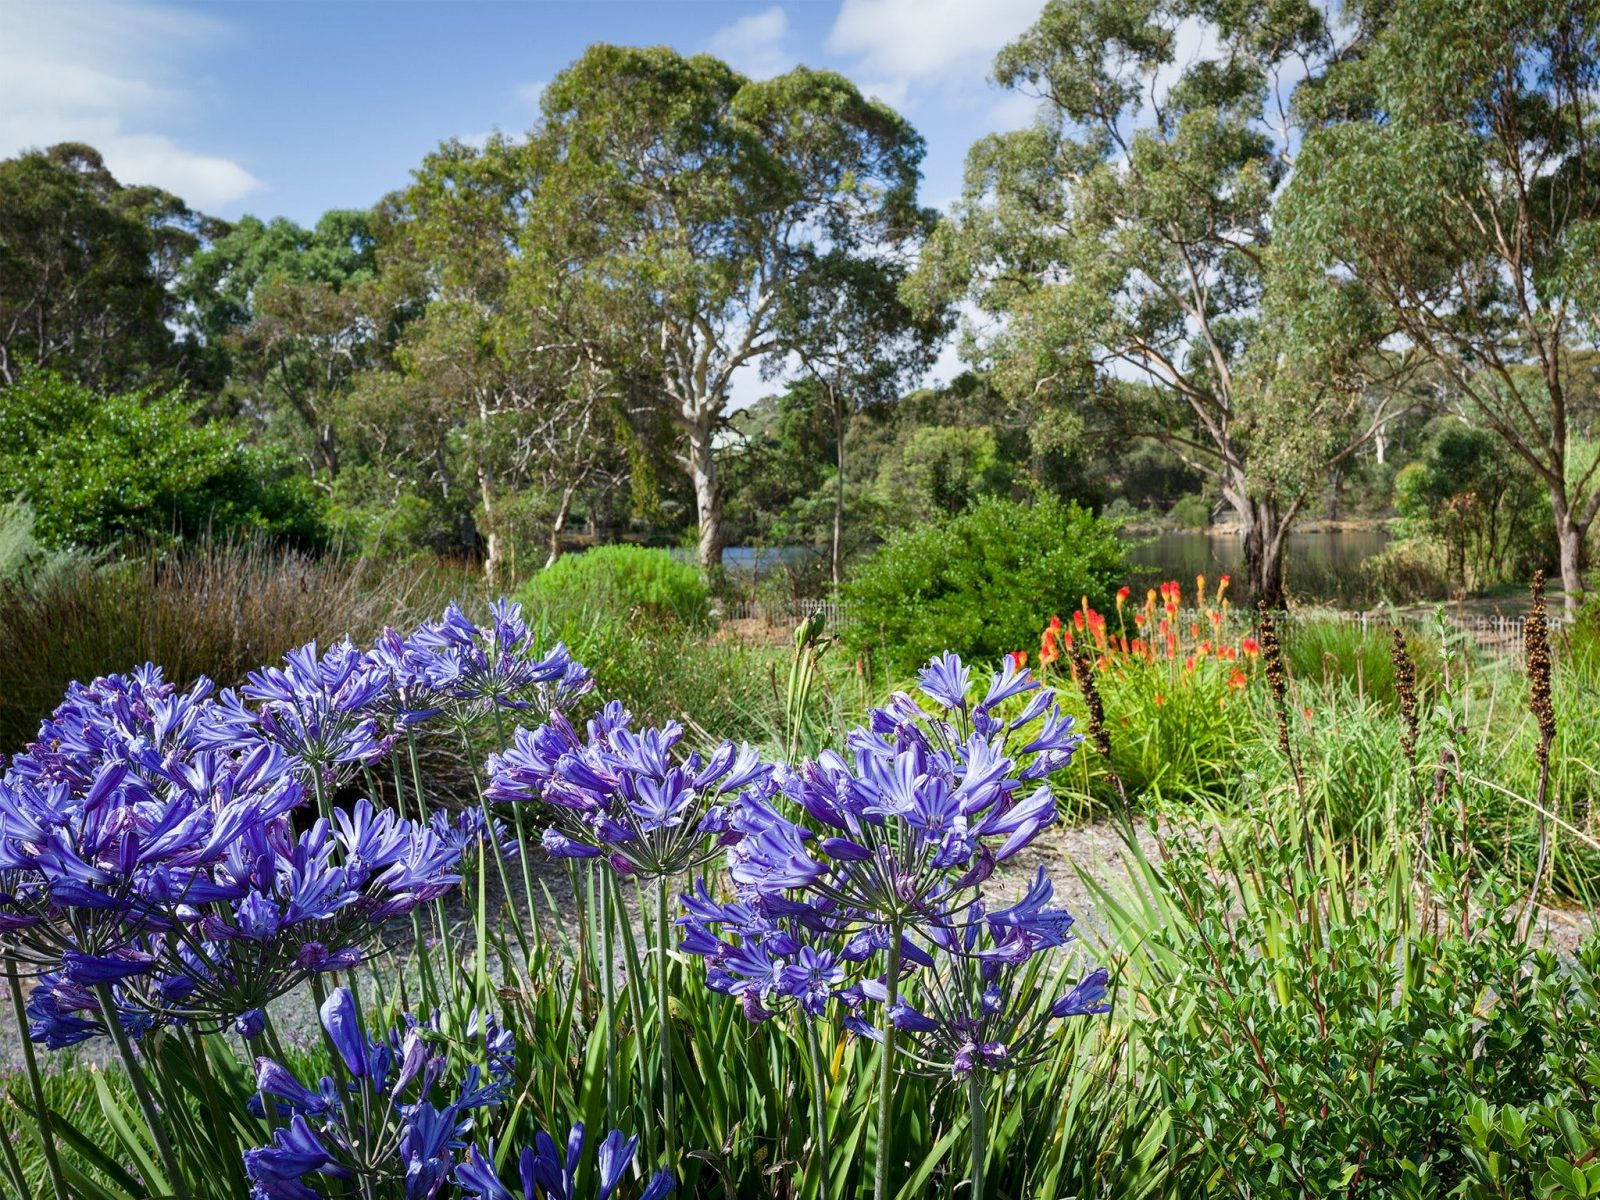 Wittunga Botanic Garden displays water-wise plants from Australia and South Africa.